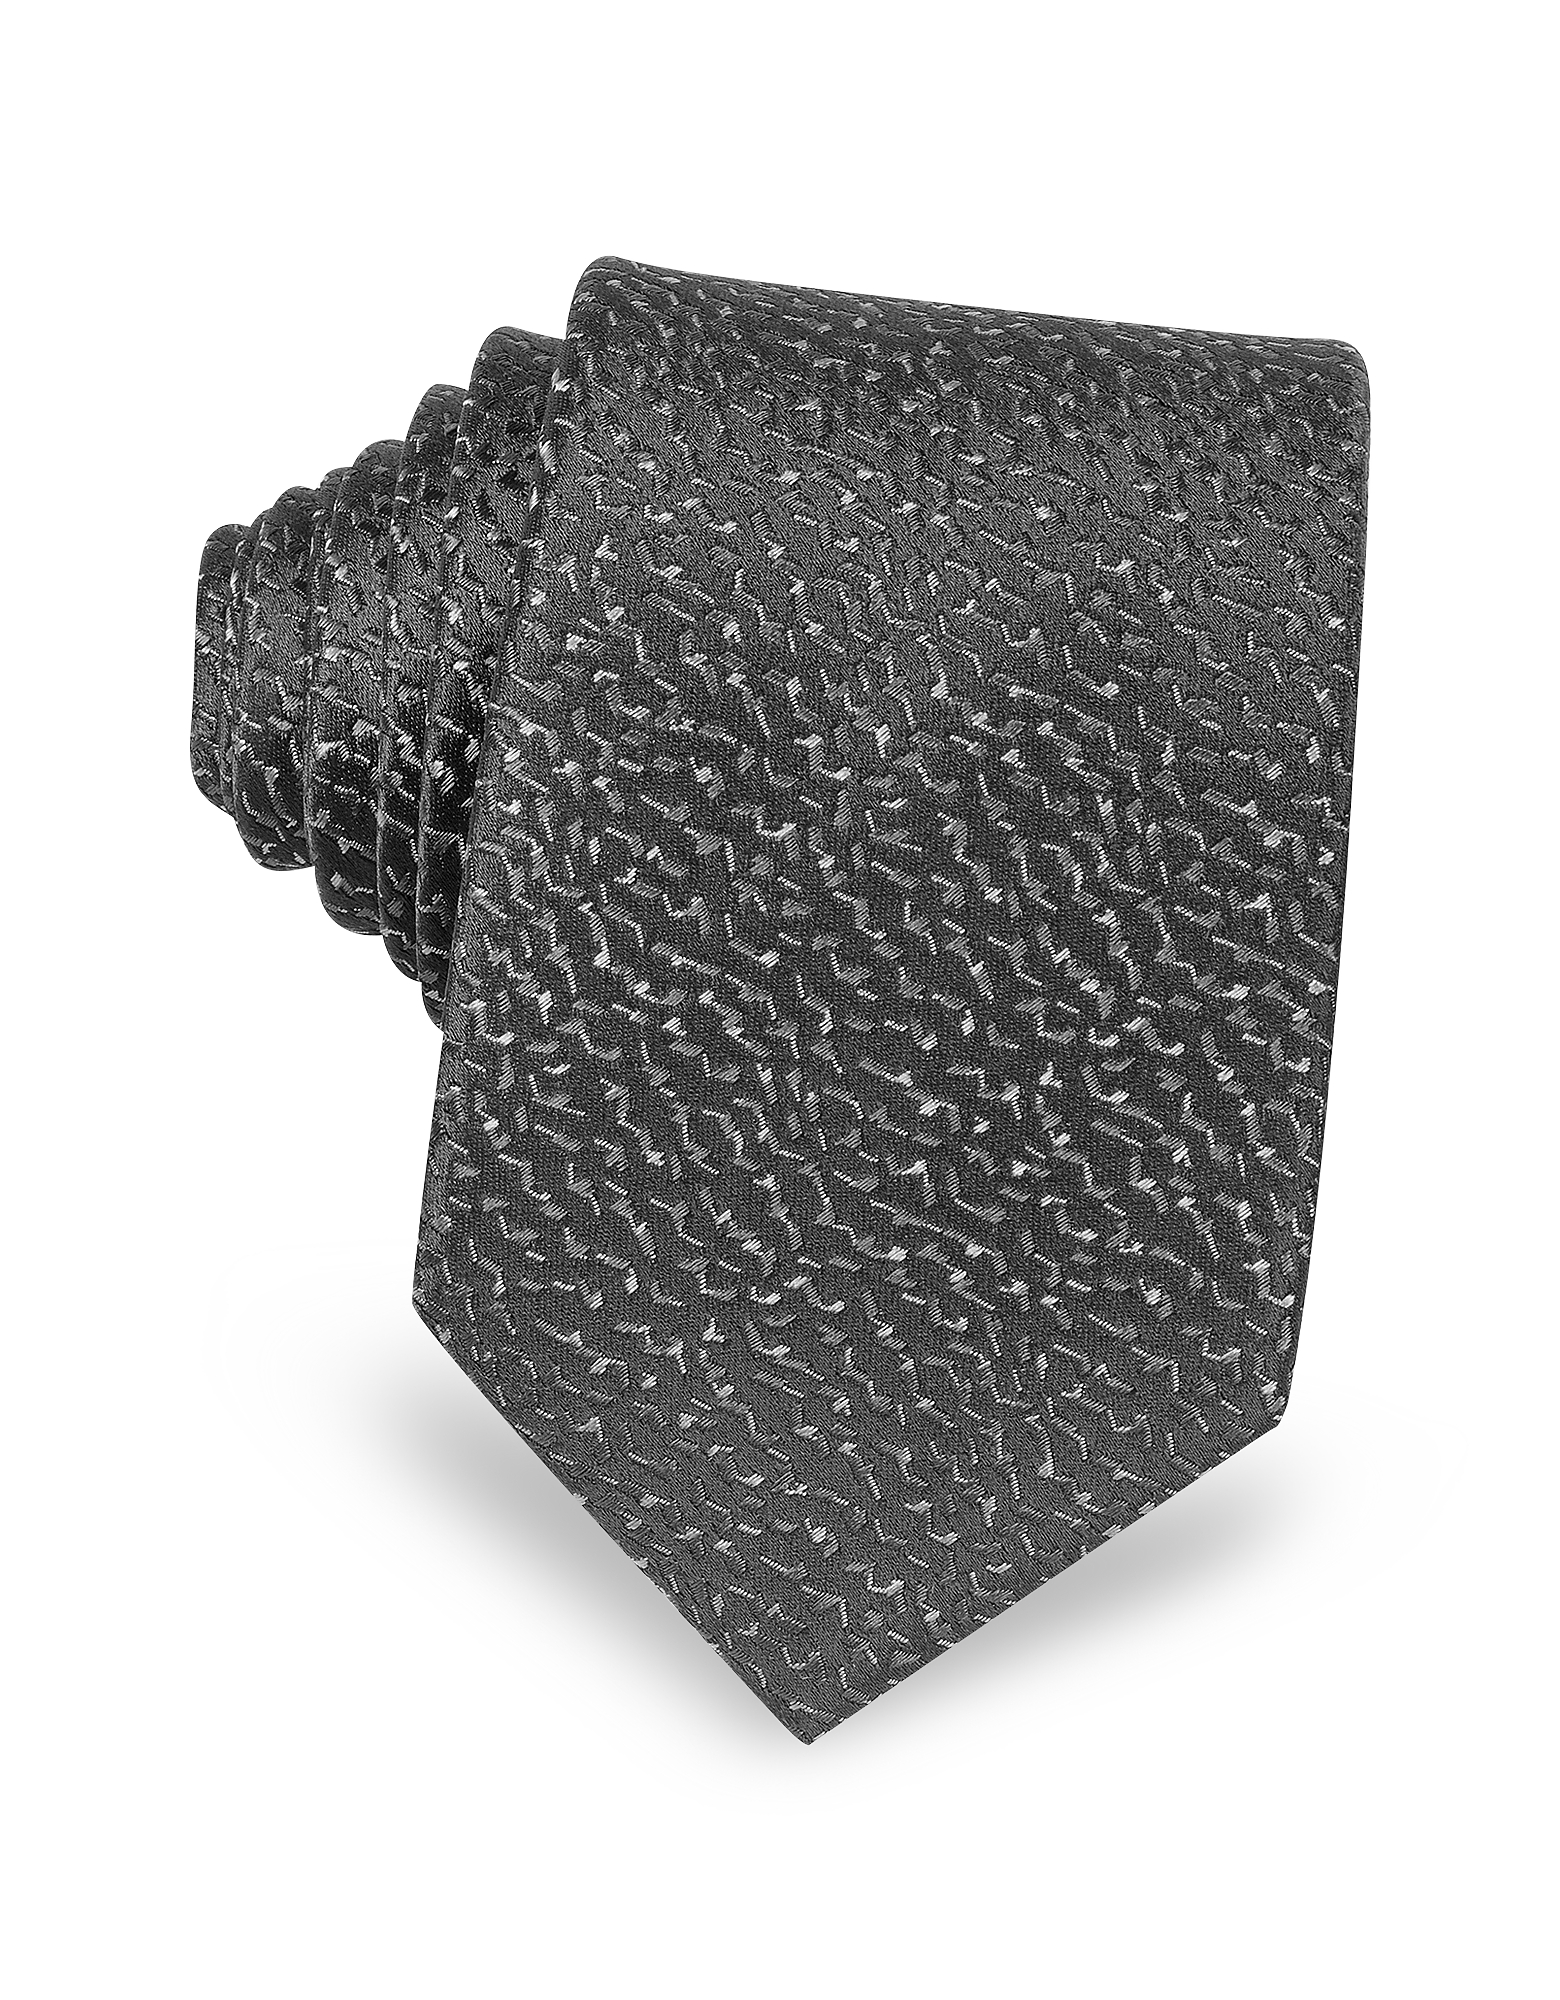 Lanvin Ties, Geometric Woven Twill Silk Narrow Tie